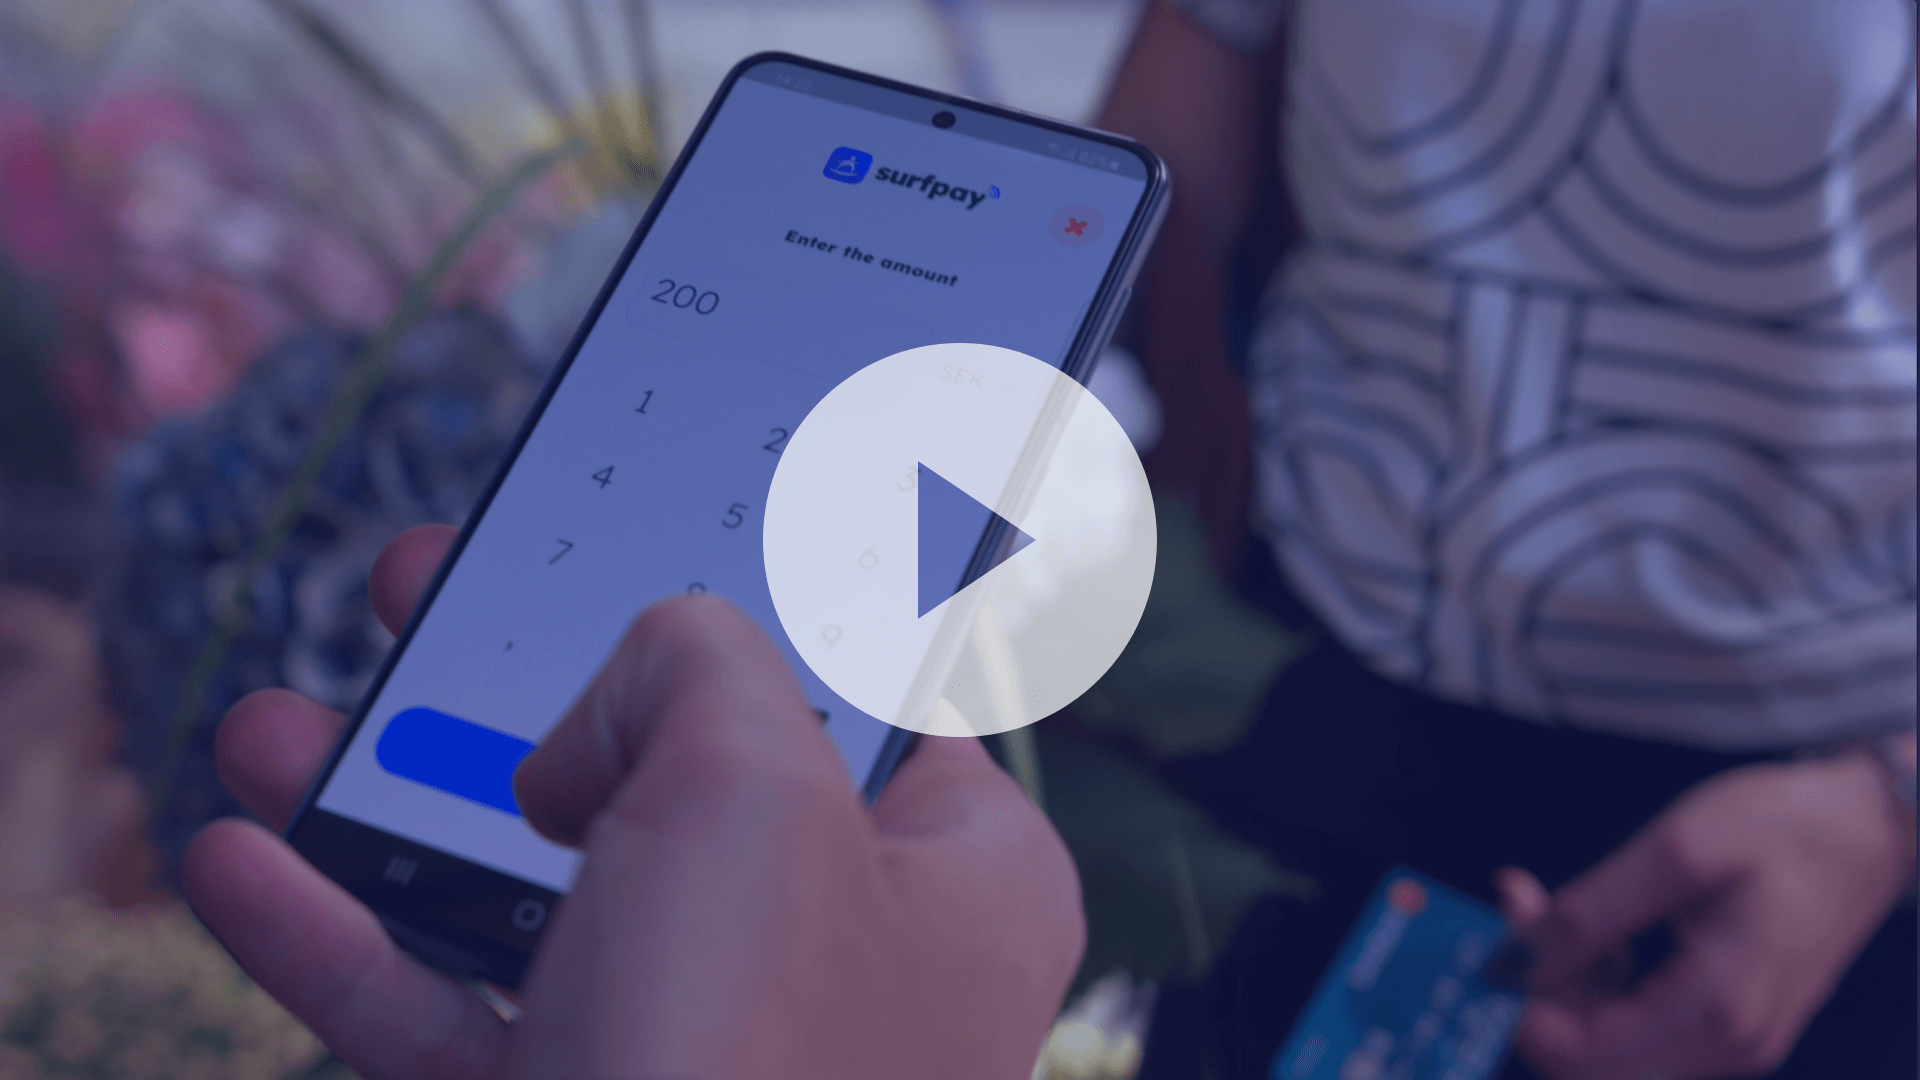 See the Surfpay app in action